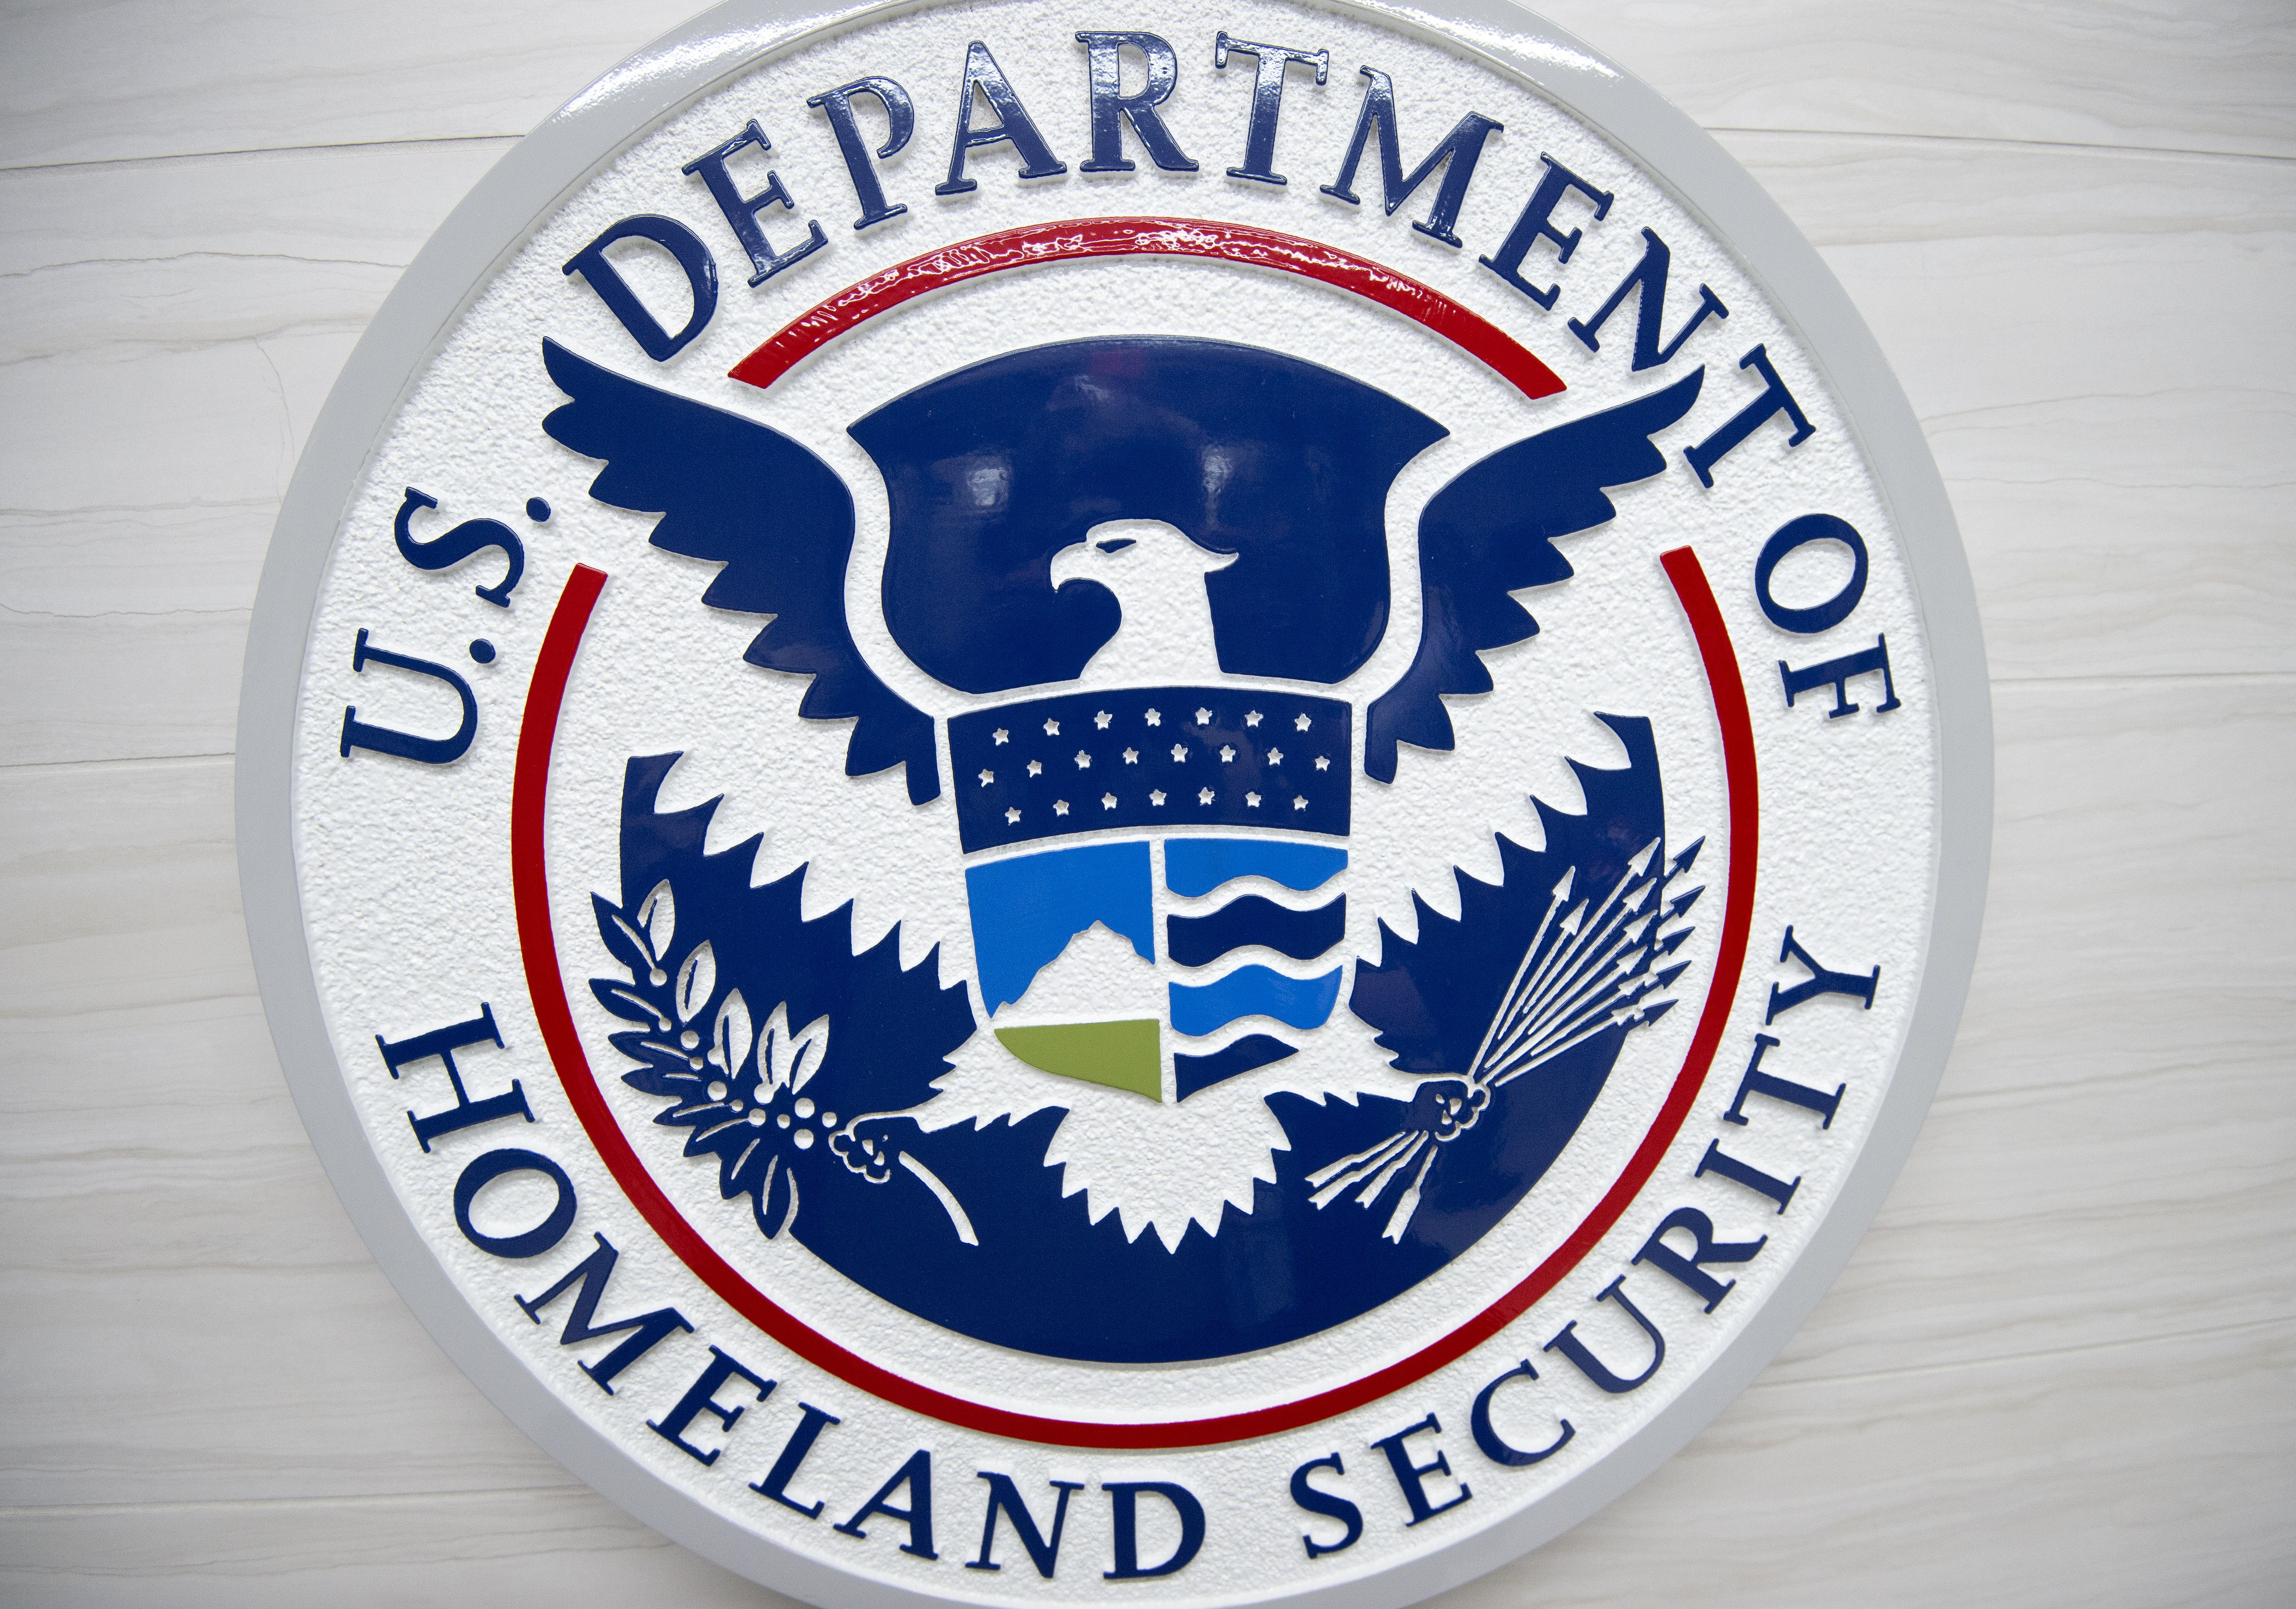 Homeland Security issues bulletin over heightened threat environment following inauguration